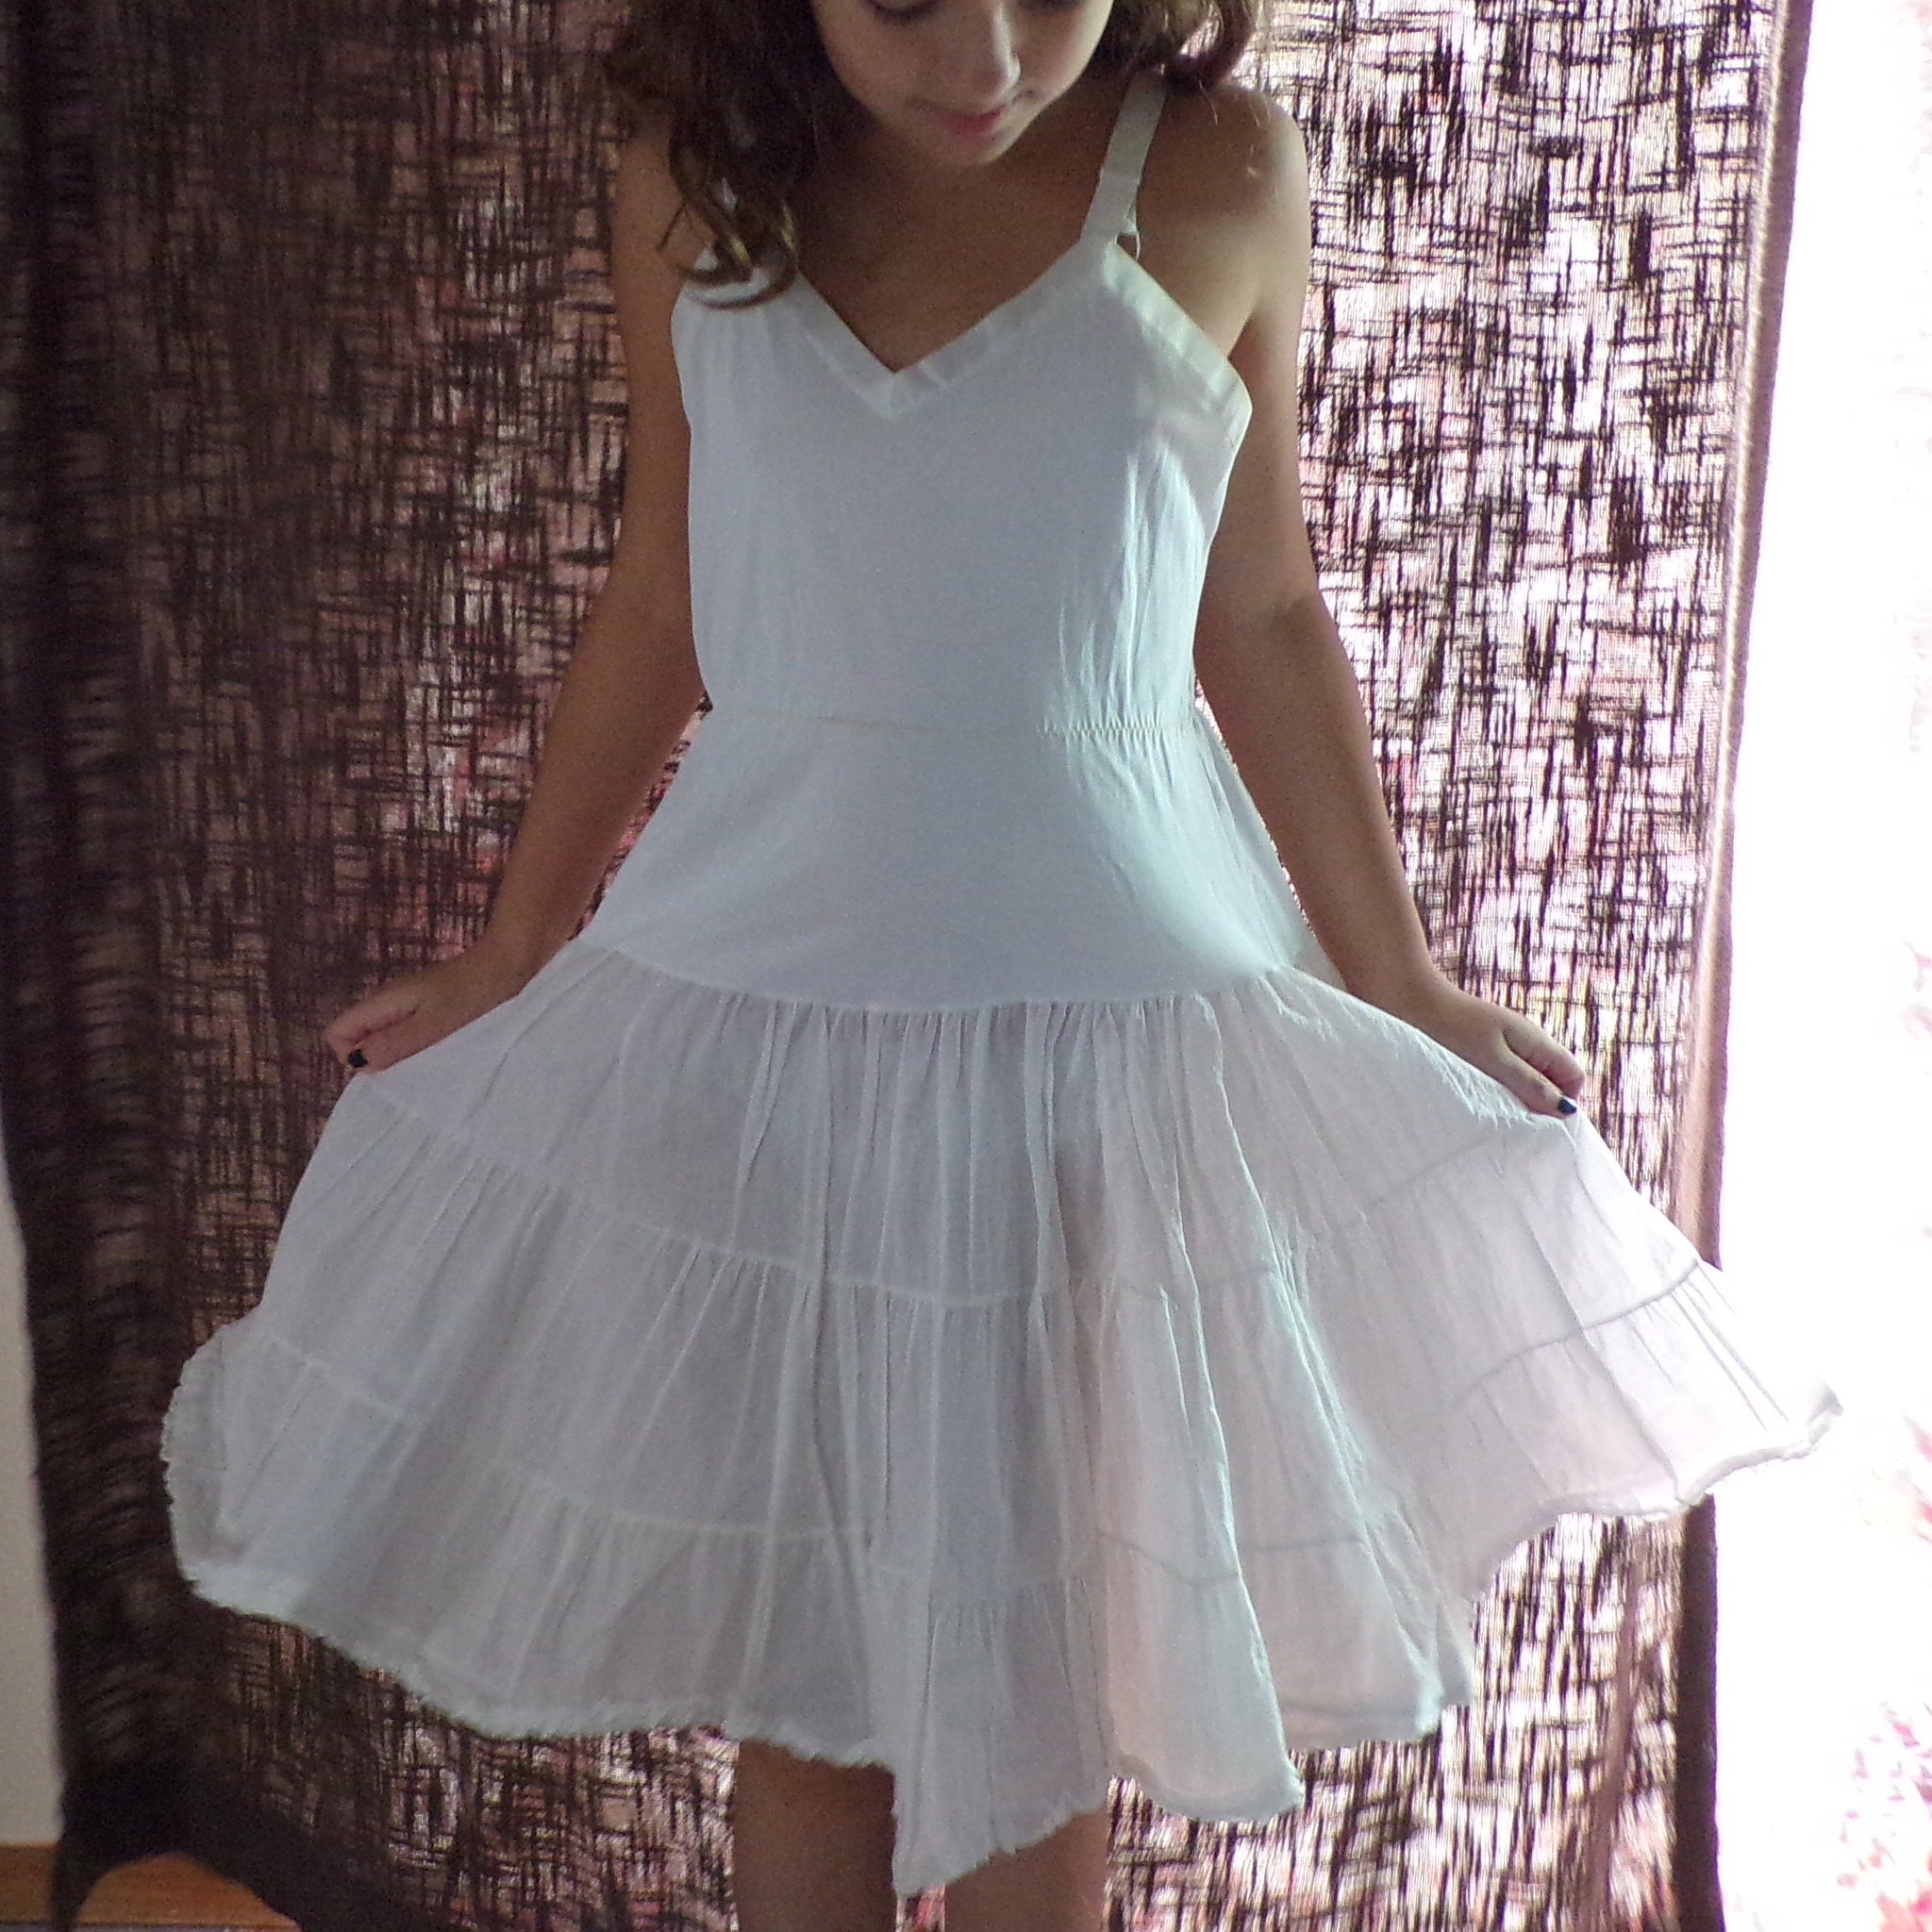 sheer GIRLS VINTAGE DRESS 1950's 50's (B9)